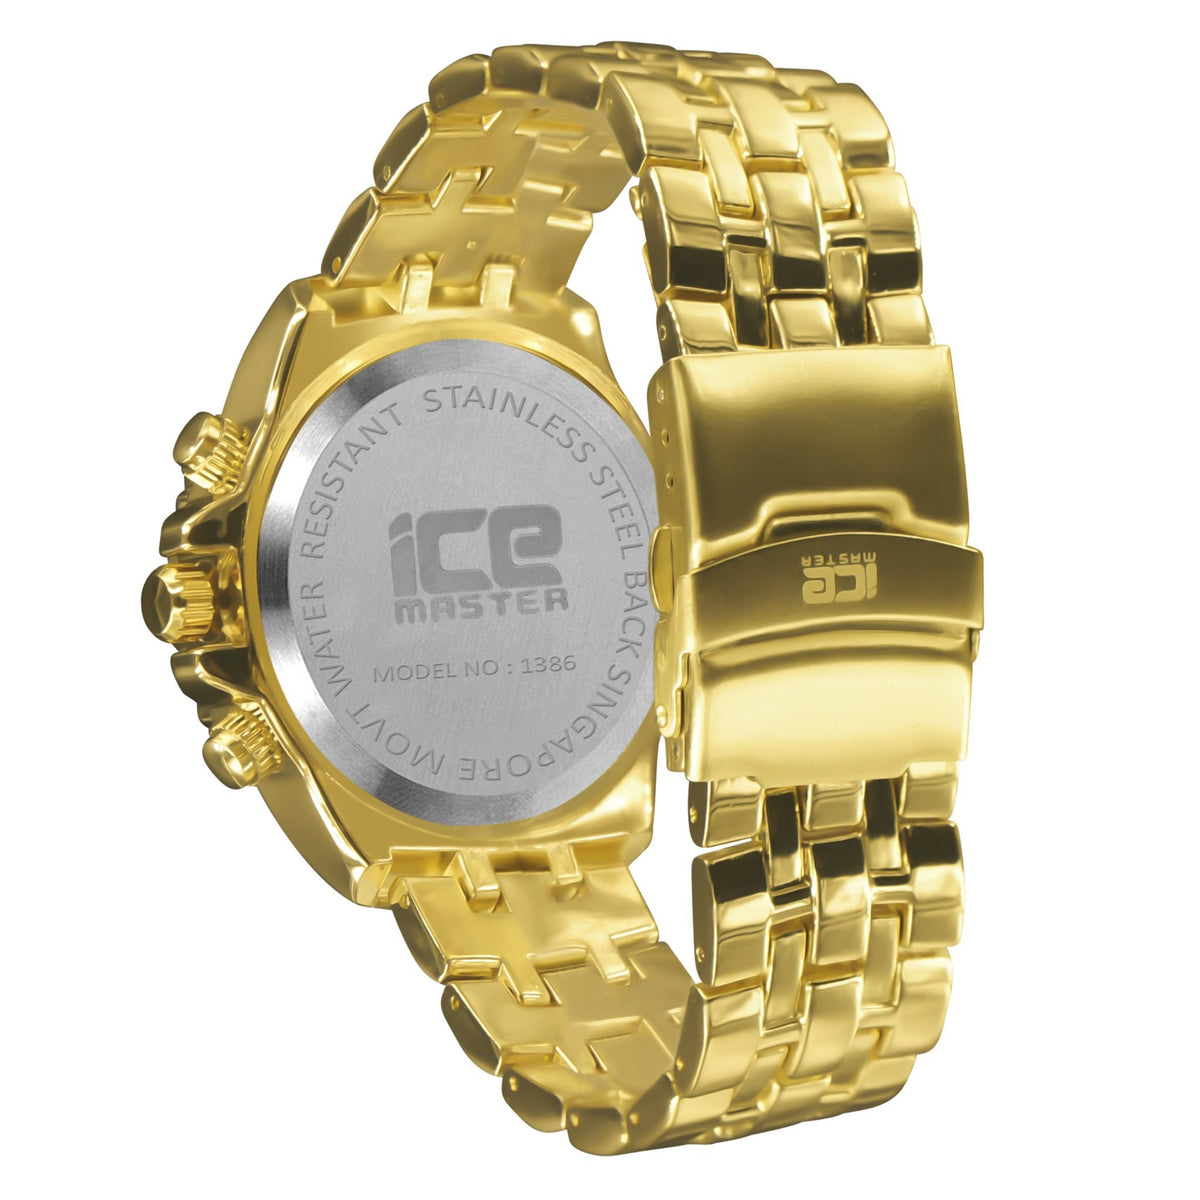 NAVIGATOR iCE Master Watch | 5623642